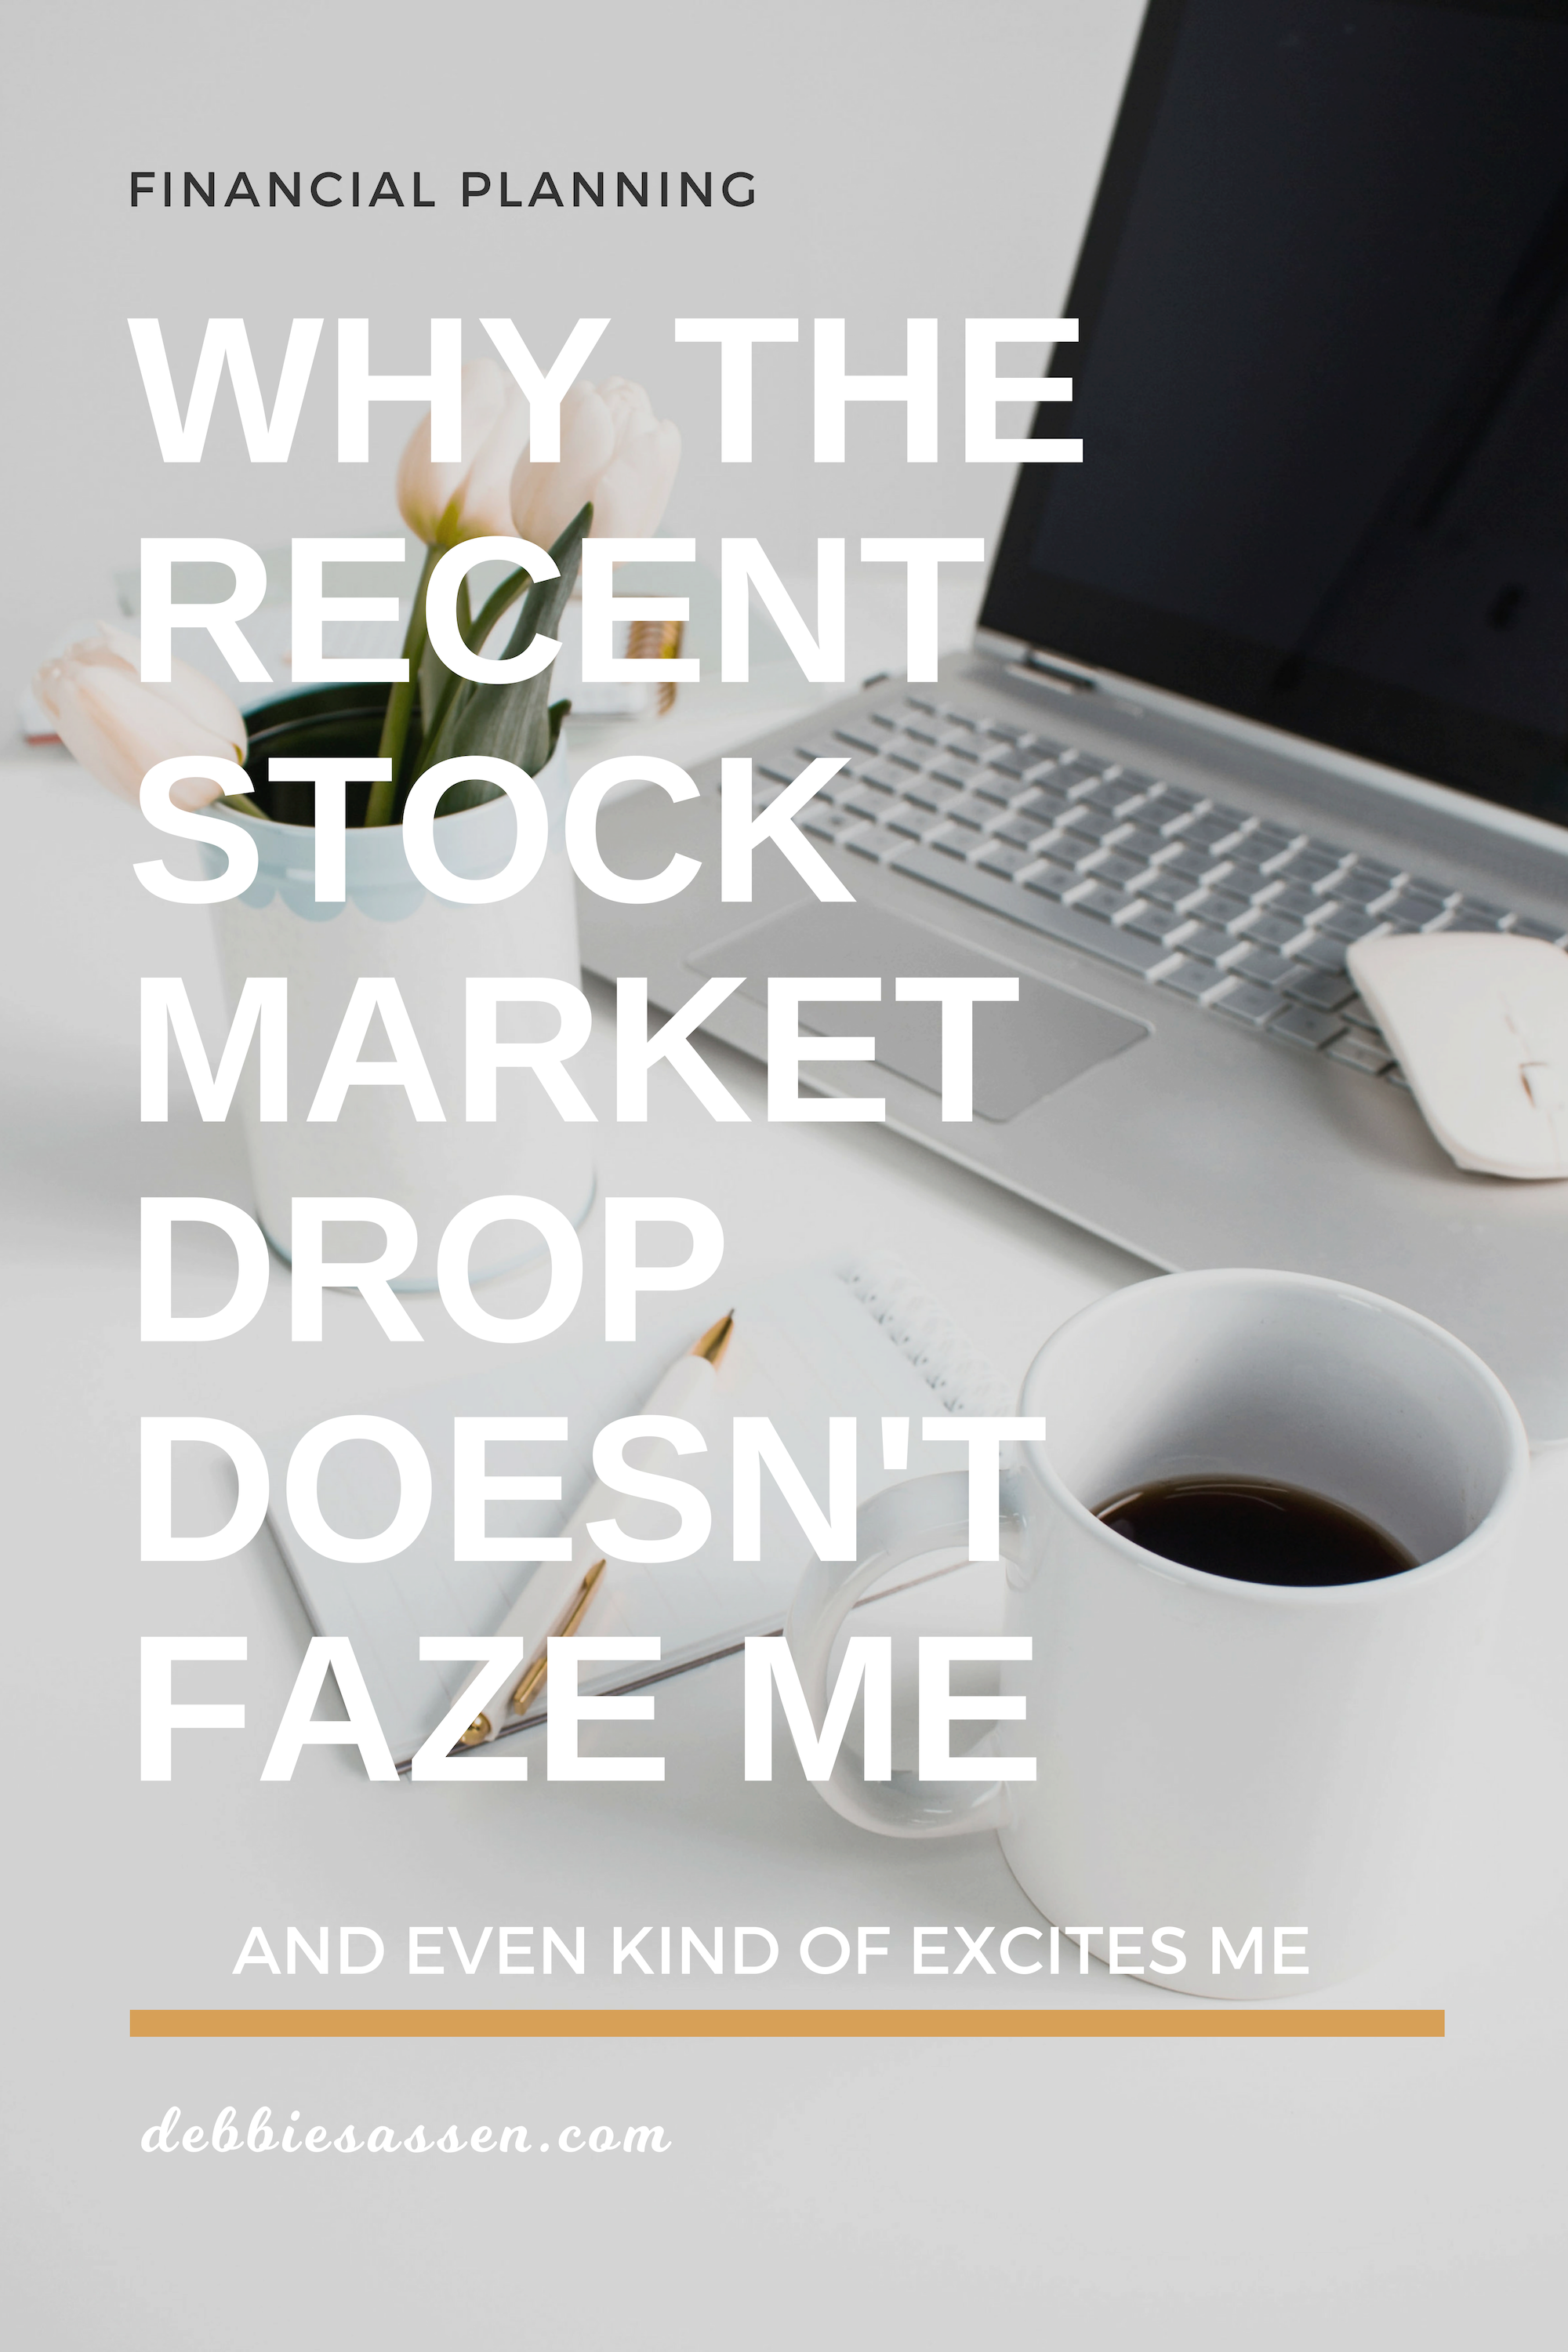 Why the Recent Stock Market Drop Doesn't Faze Me and Even Kind of Excites Me Pin - Debbie Sassen